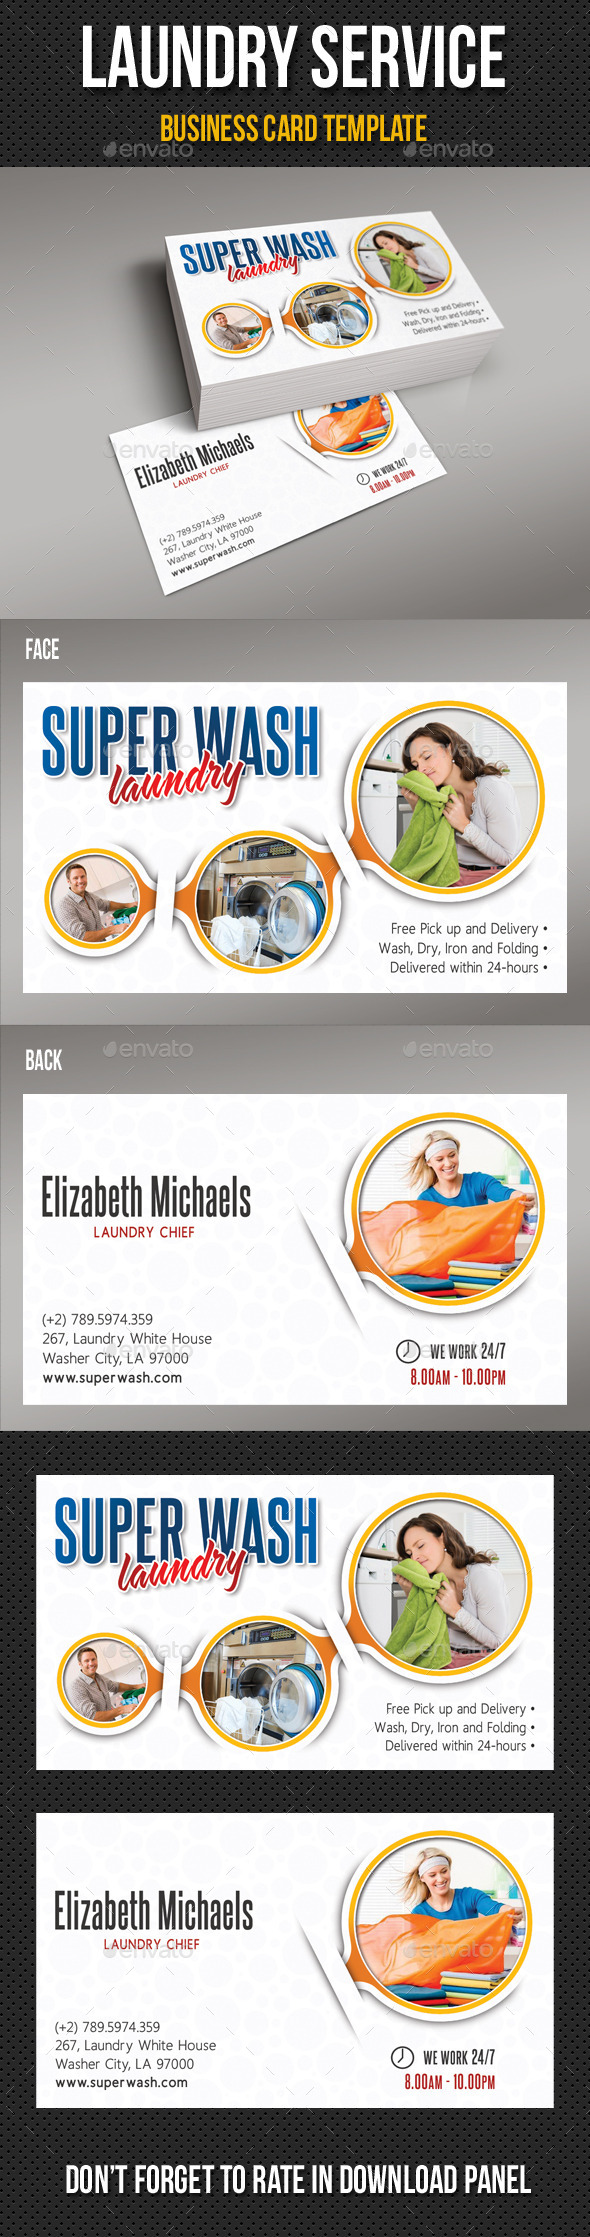 Laundry Services Business Card V02